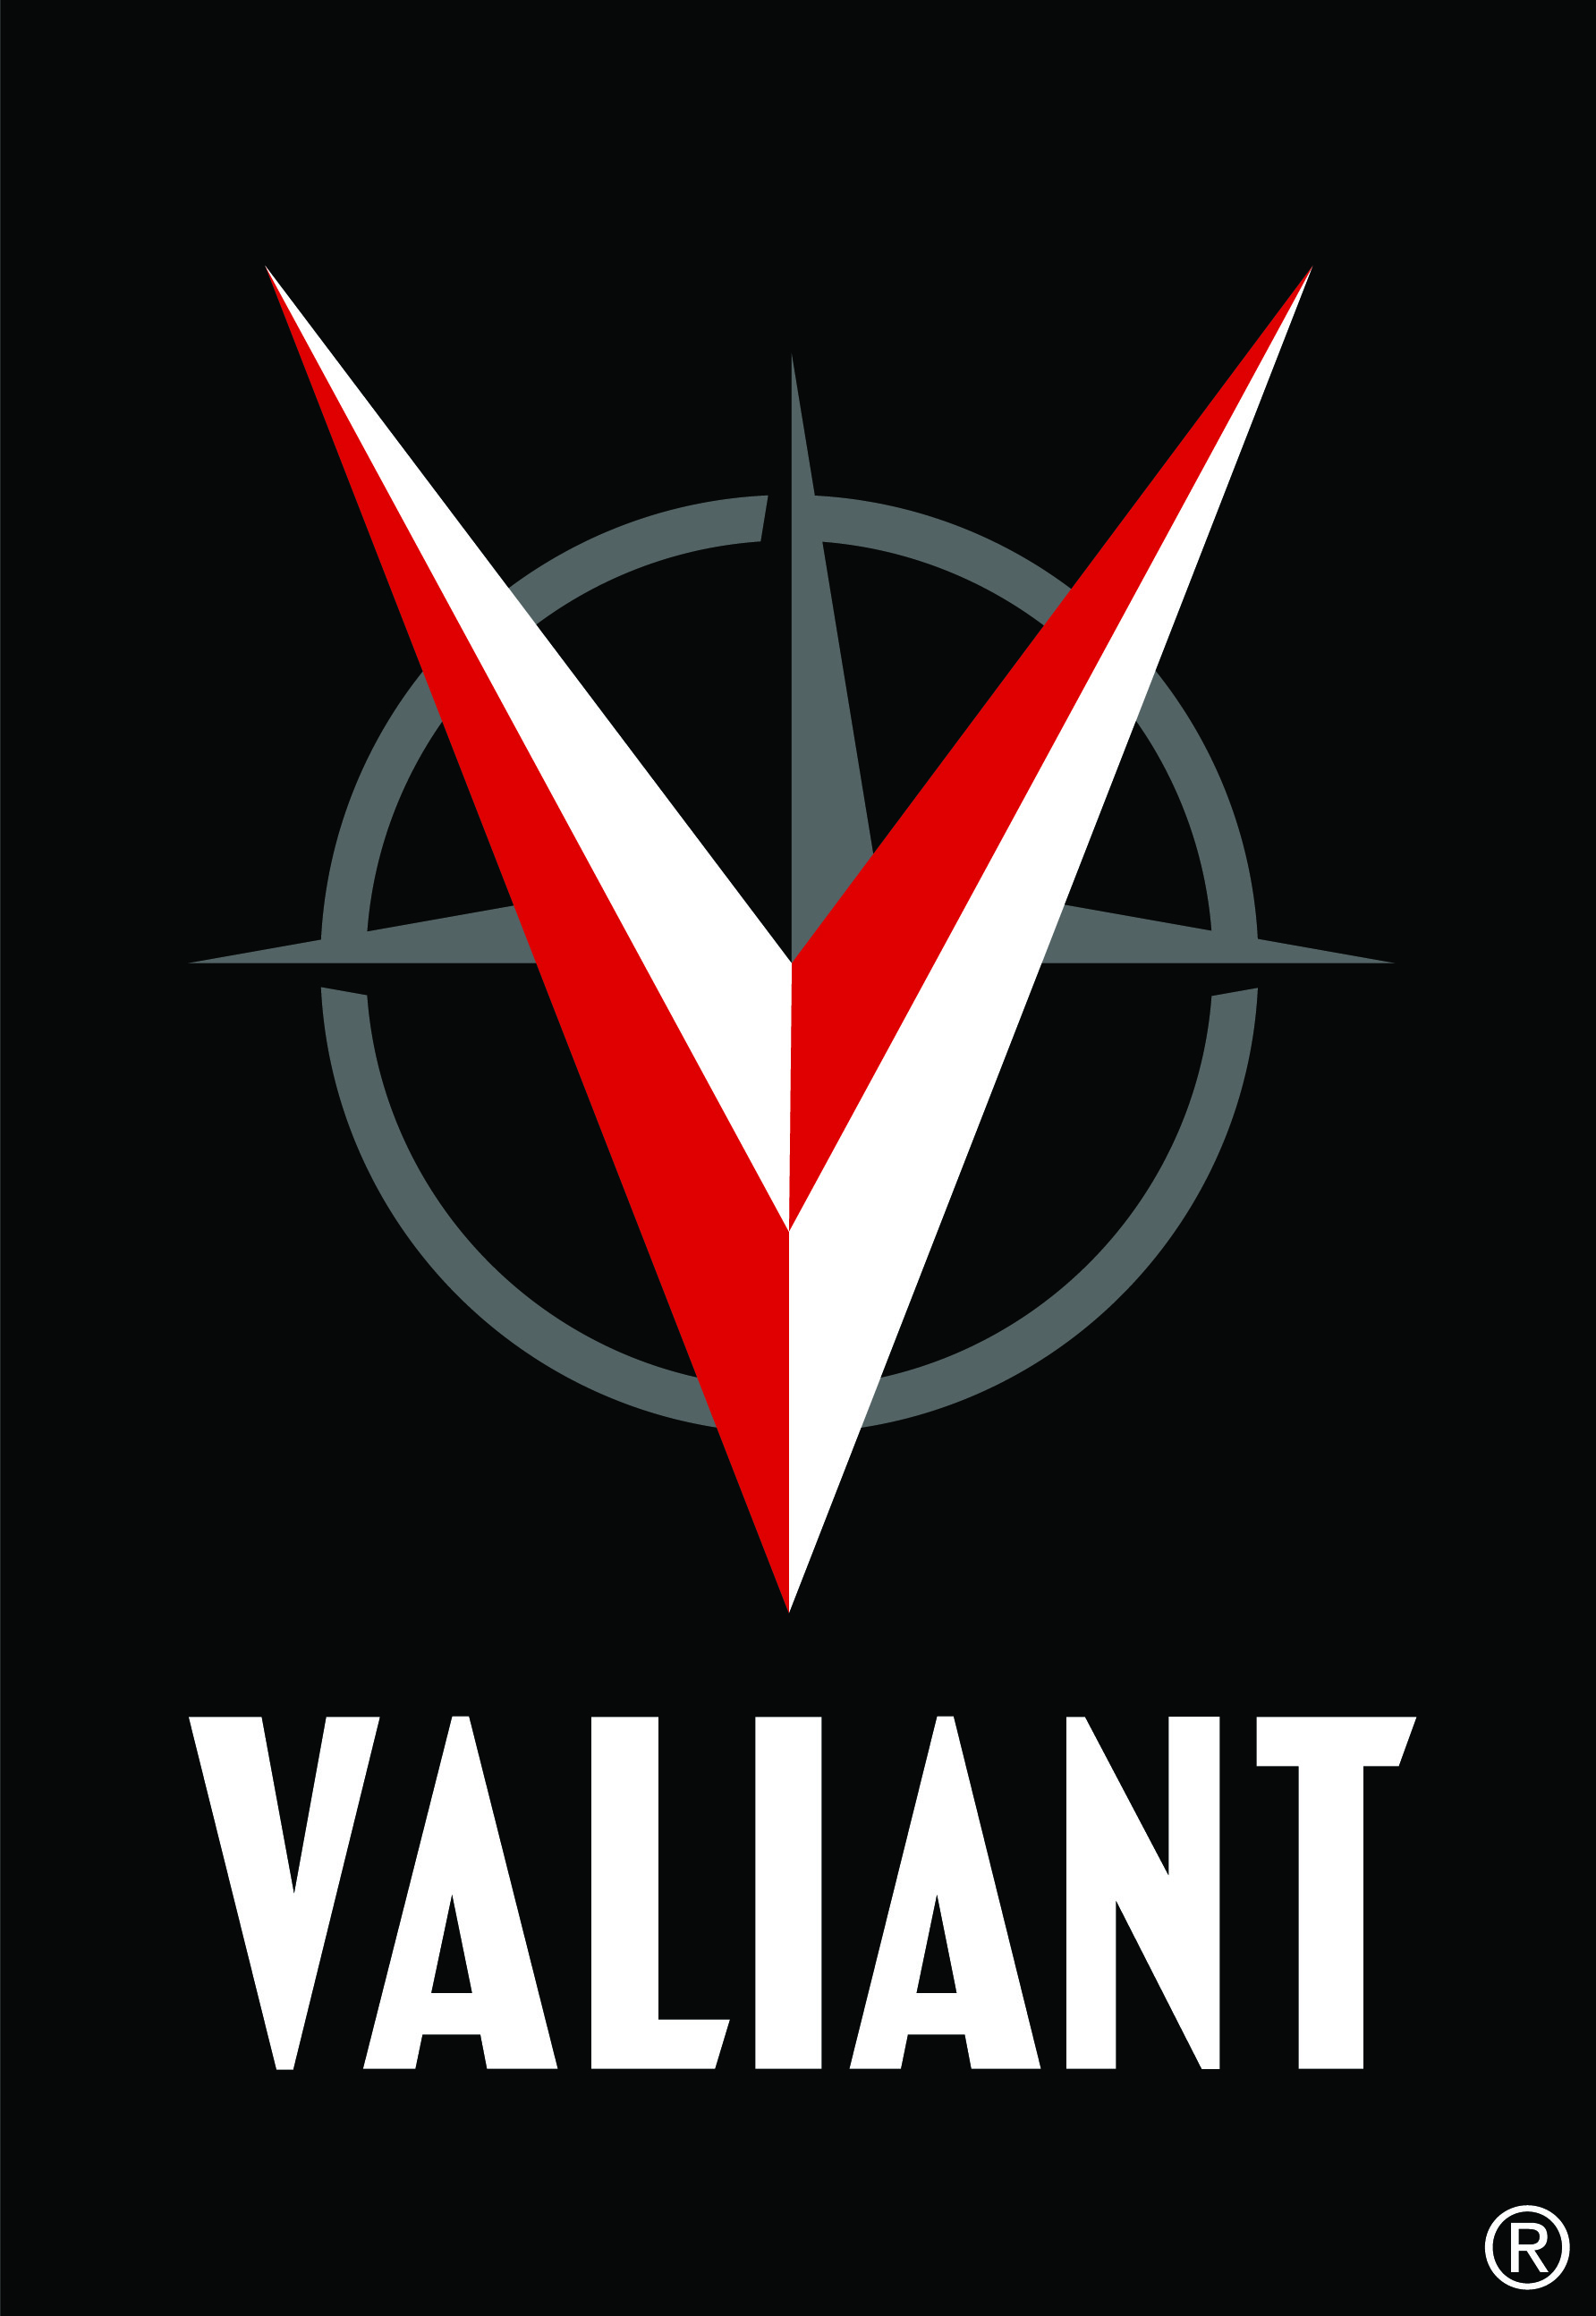 valiant logo red